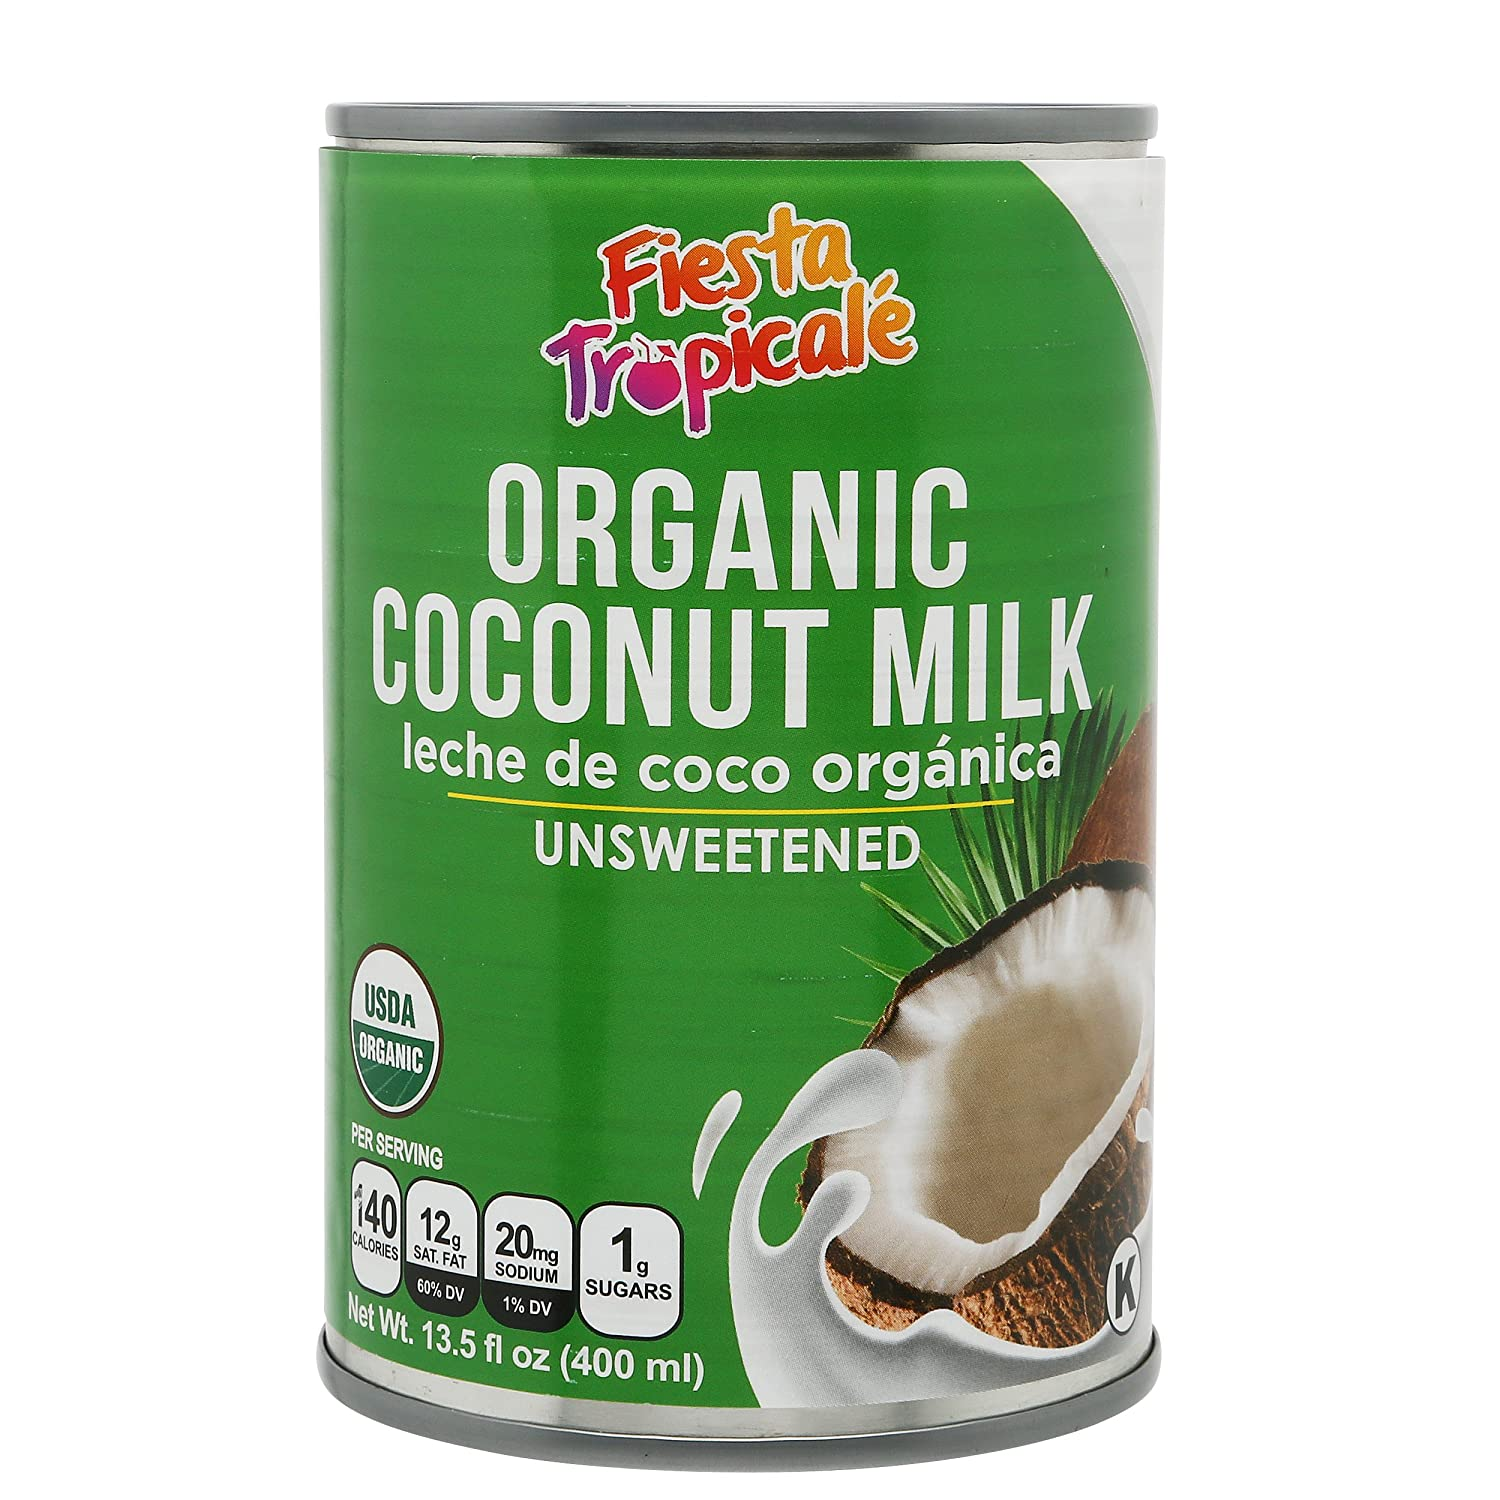 Organic Coconut Milk Unsweetened Full-Fat Pure BPA-Free Canned Dairy Free Milk Alternative, for Vegan, Paleo, Keto Diet, Coffee Creamer, Yogurt - 13.5 oz. Cans (Count of 6) by Fiesta Tropicale